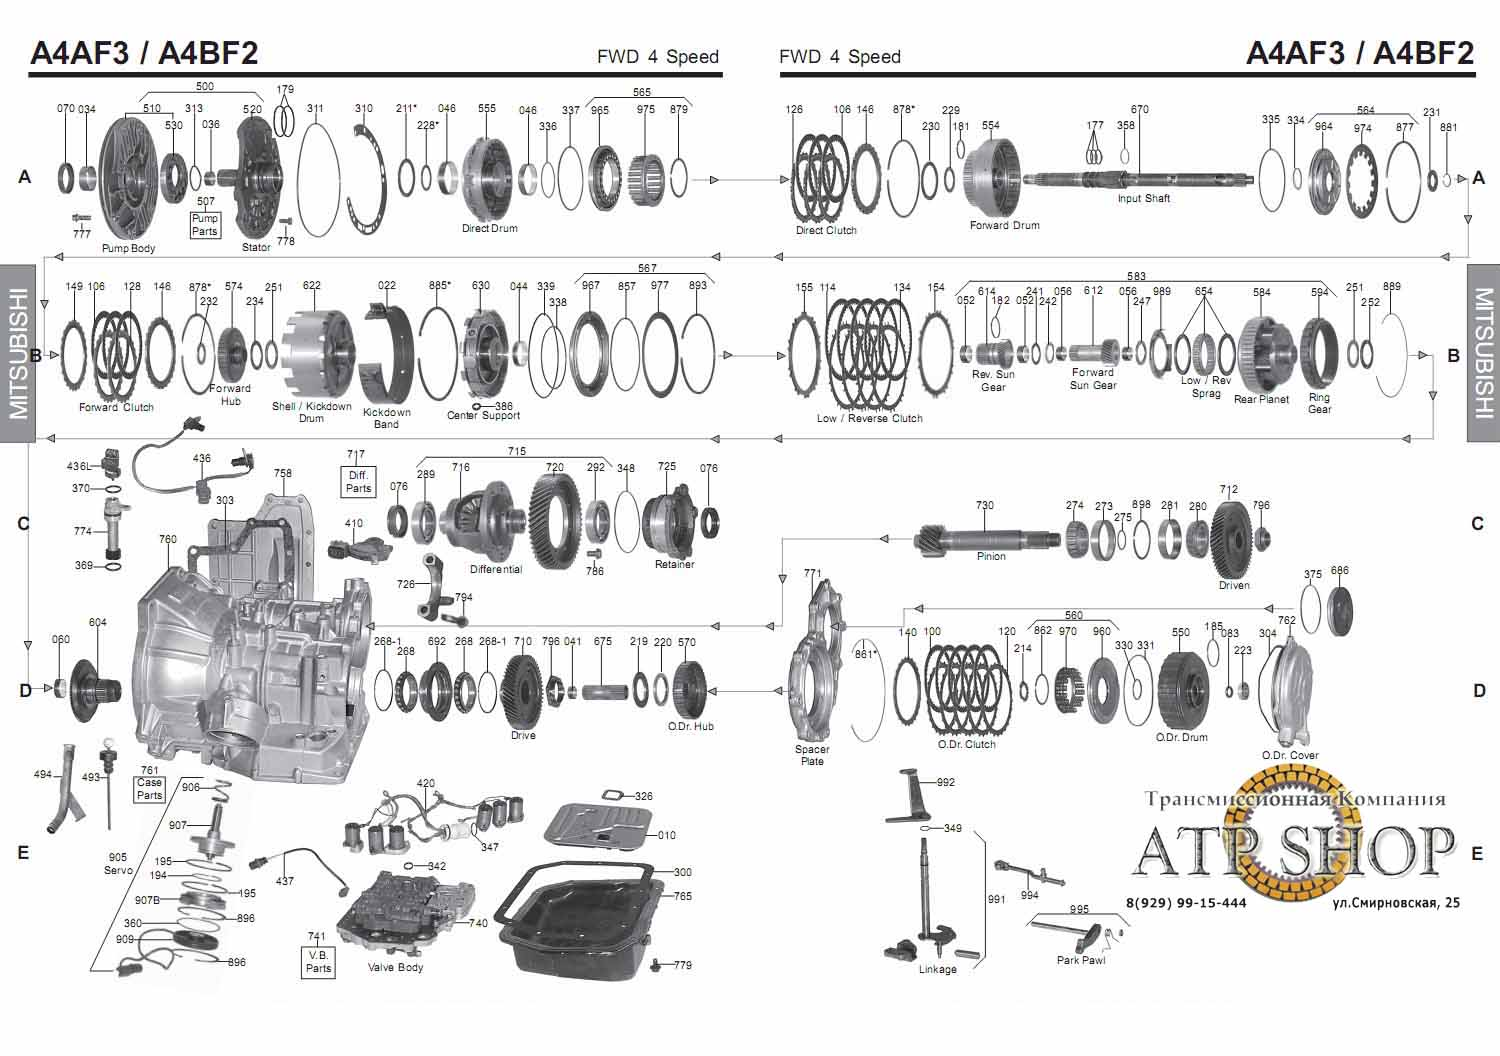 2002 Hyundai Accent Automatic Transmission Parts Diagram Trusted Schematic 2011 Elantra Indigo Blue Pearl Autos Gallery Valve Body